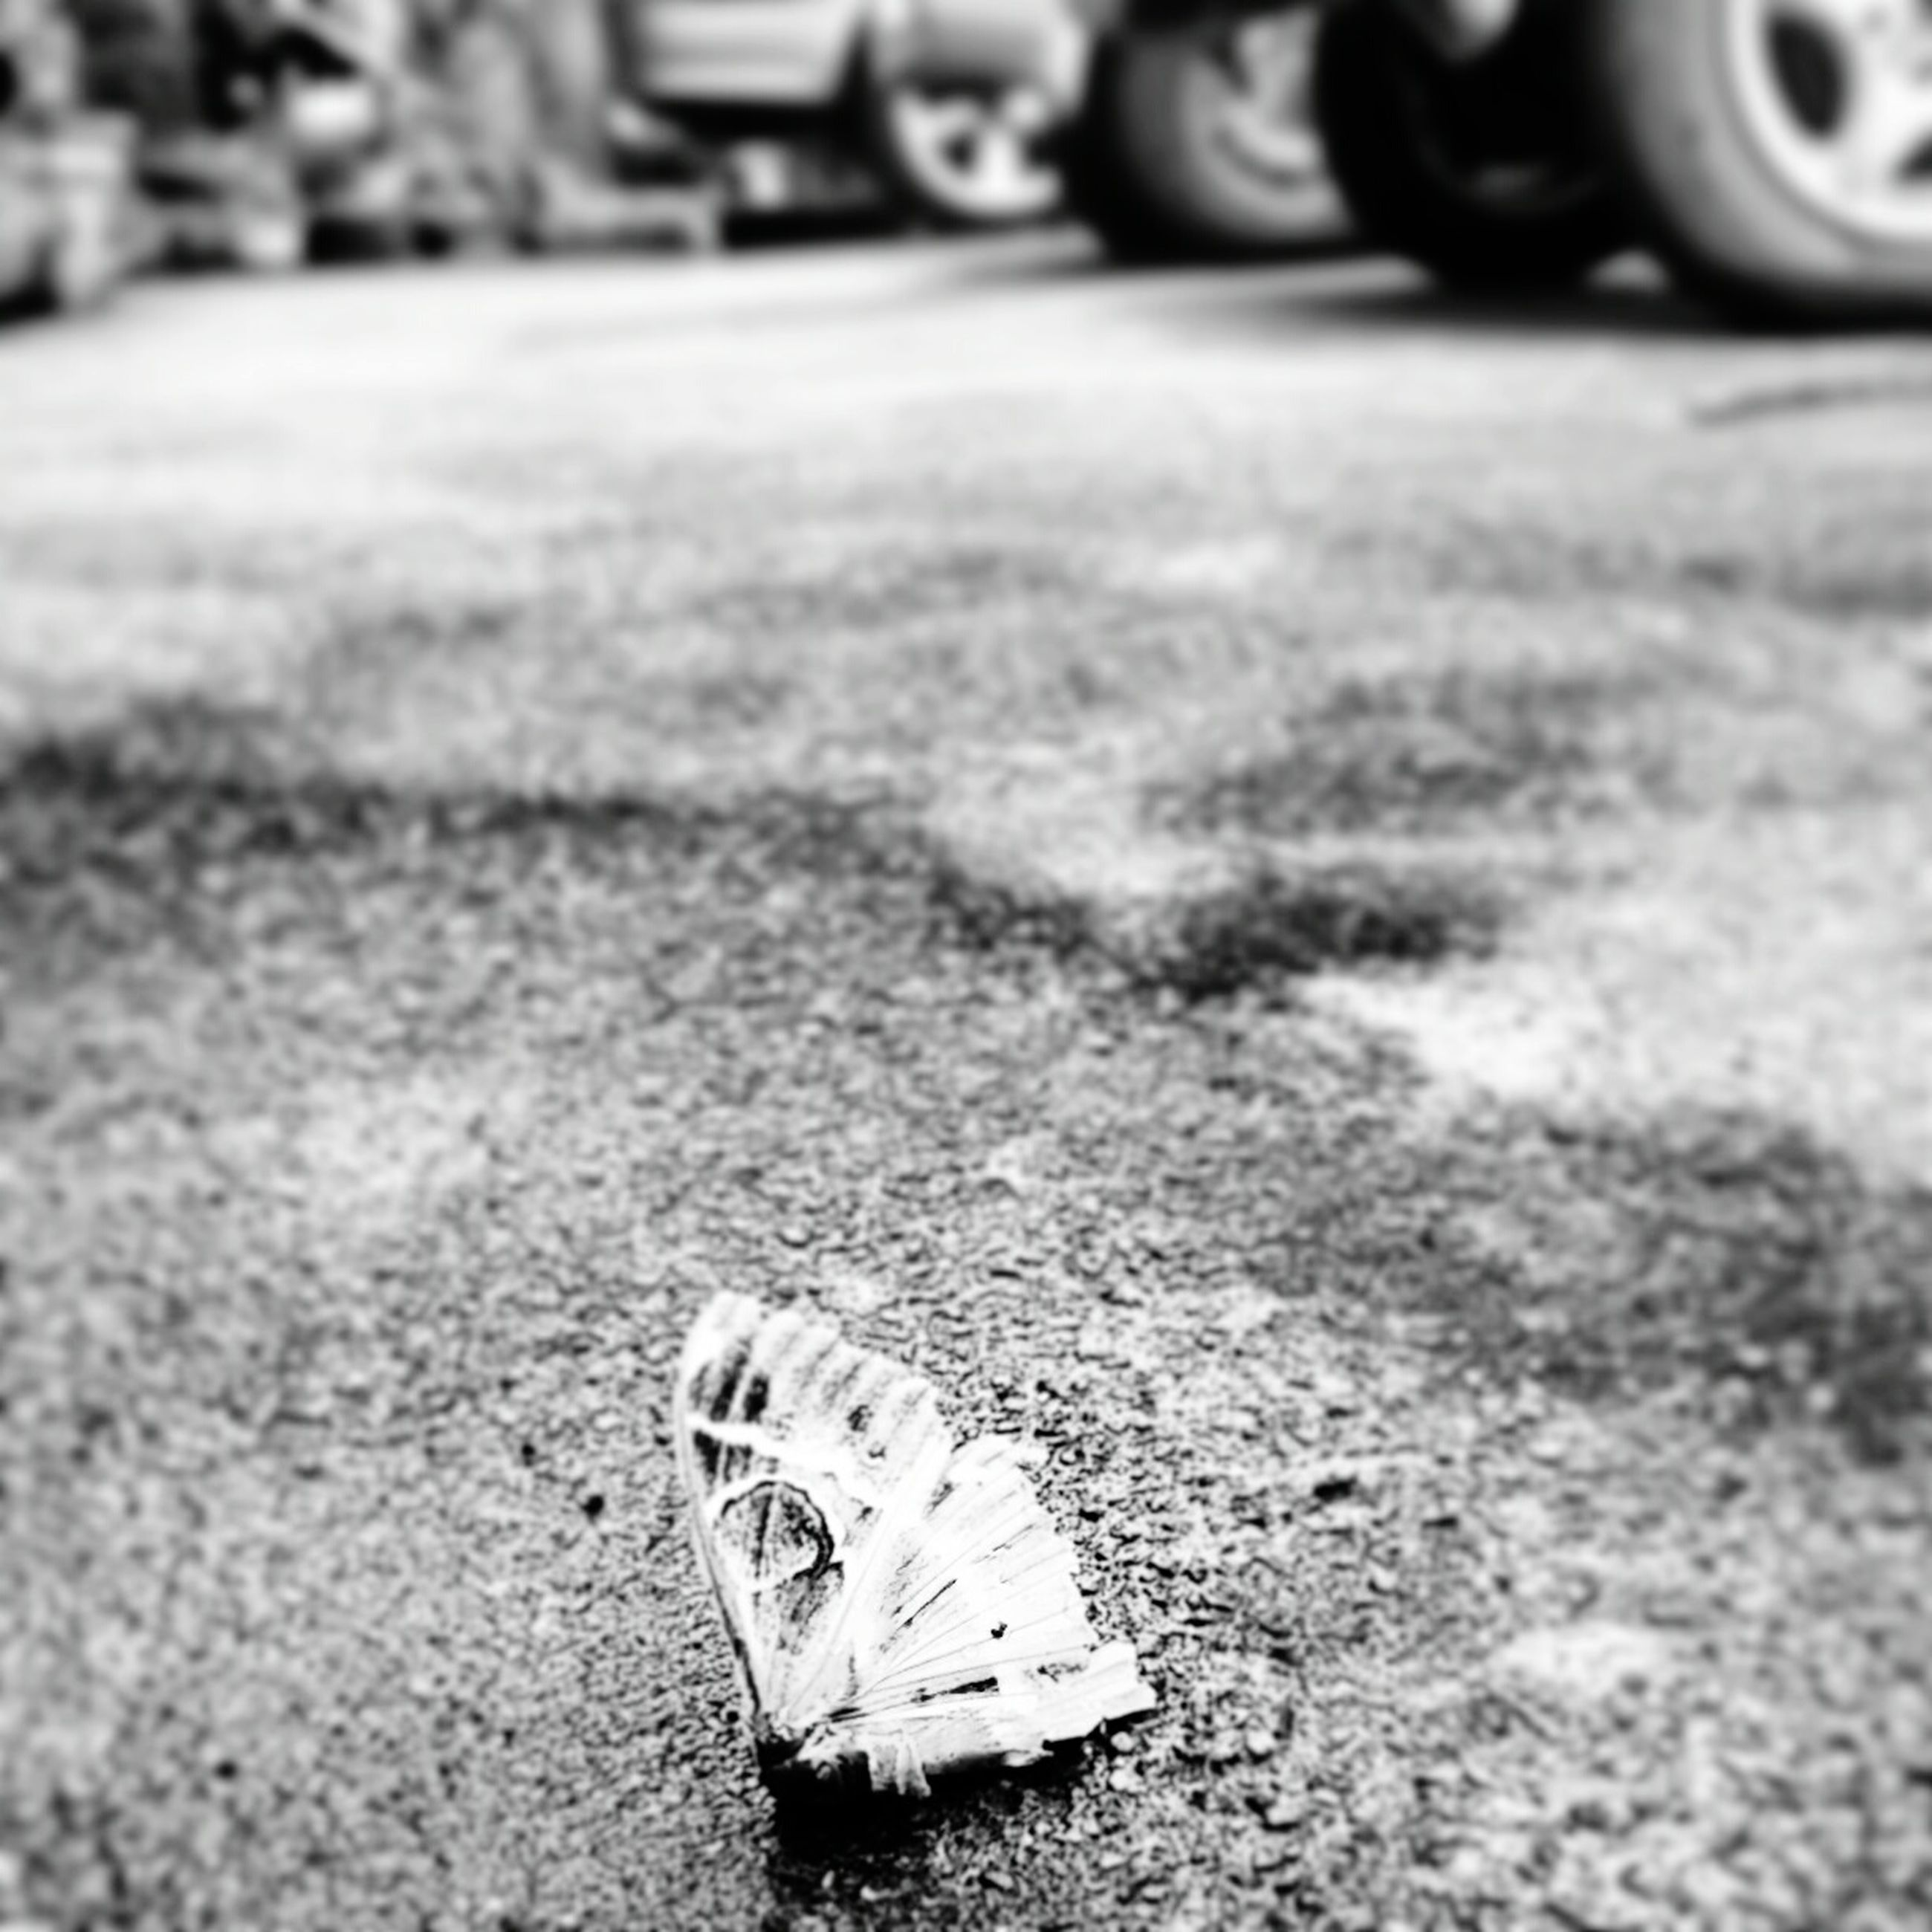 transportation, focus on foreground, selective focus, land vehicle, close-up, mode of transport, shoe, street, part of, bicycle, outdoors, field, road, day, wheel, one person, grass, single object, tire, car